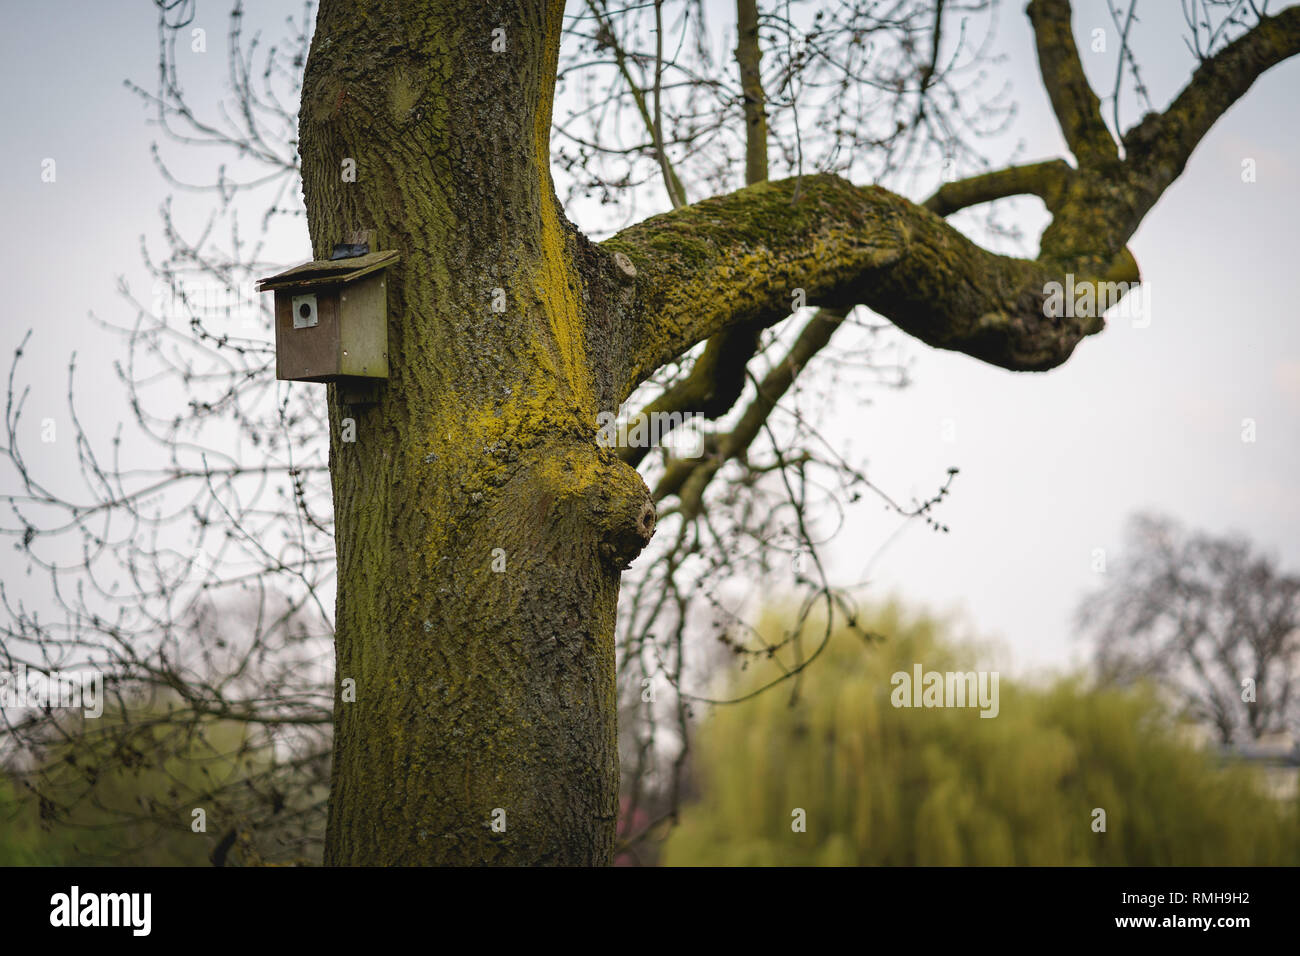 A bird house on a tree in a park in central London (UK). Landscape format. - Stock Image